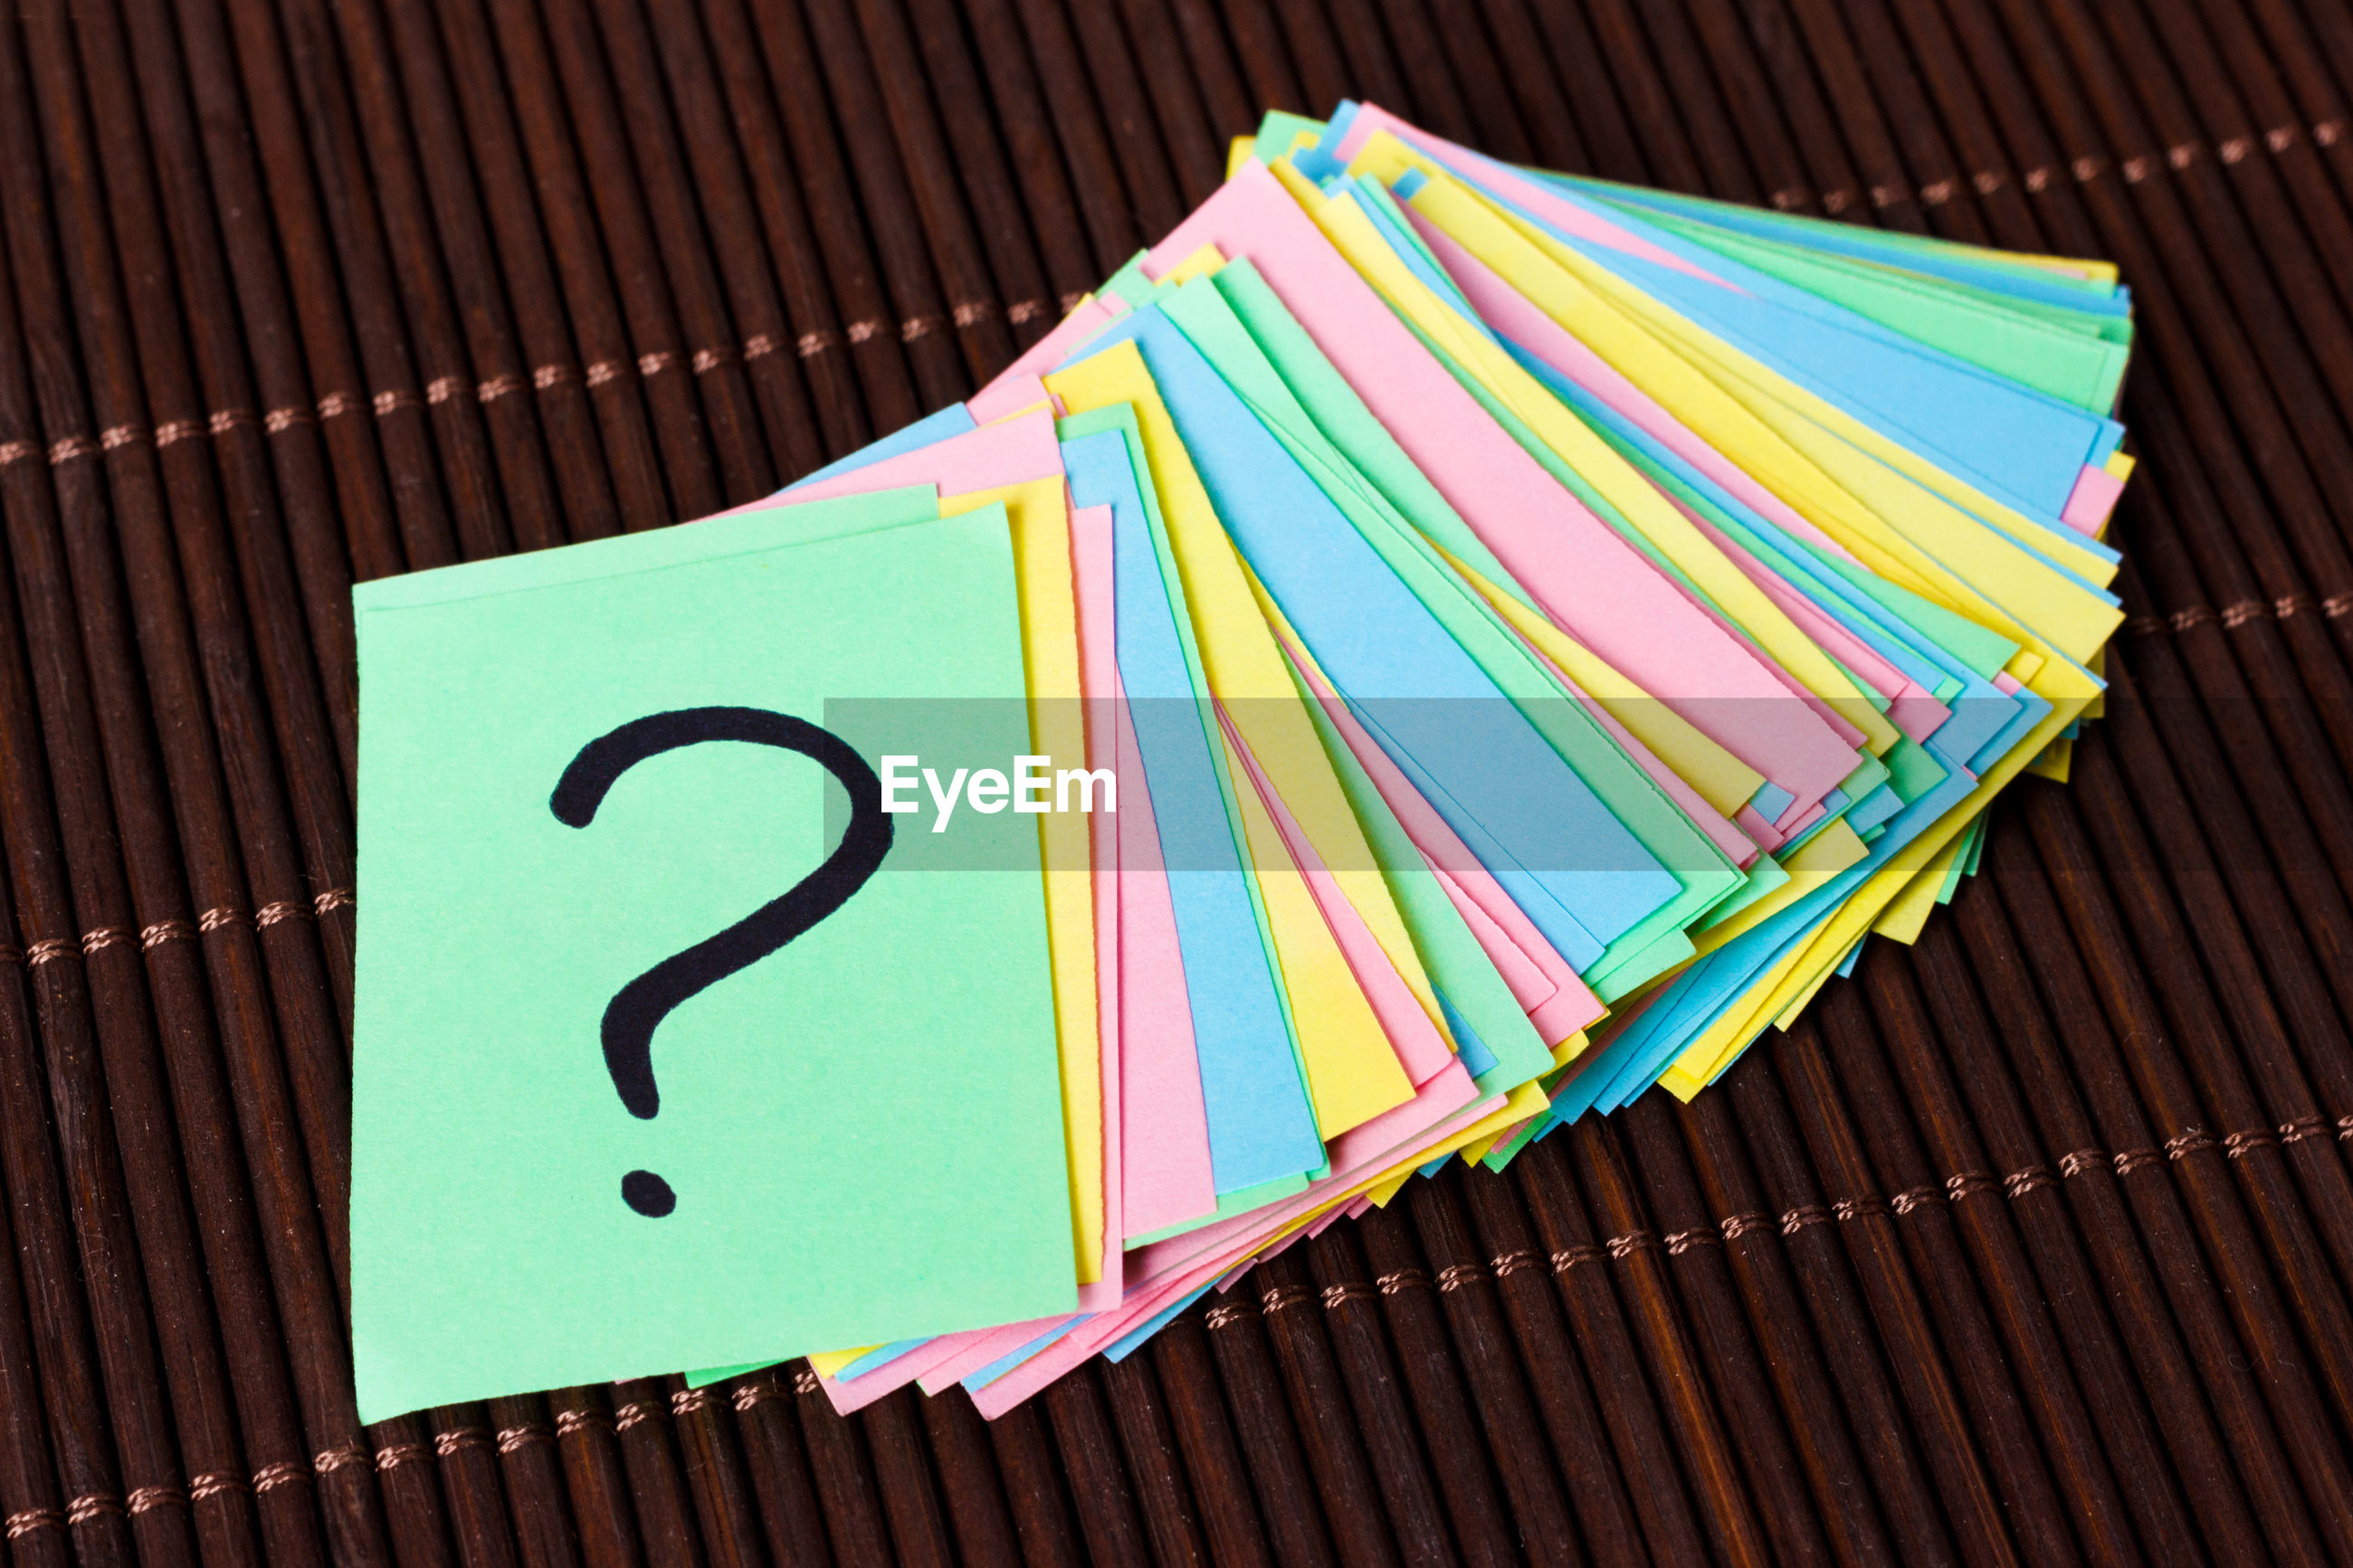 High angle view of colorful adhesive notes on table